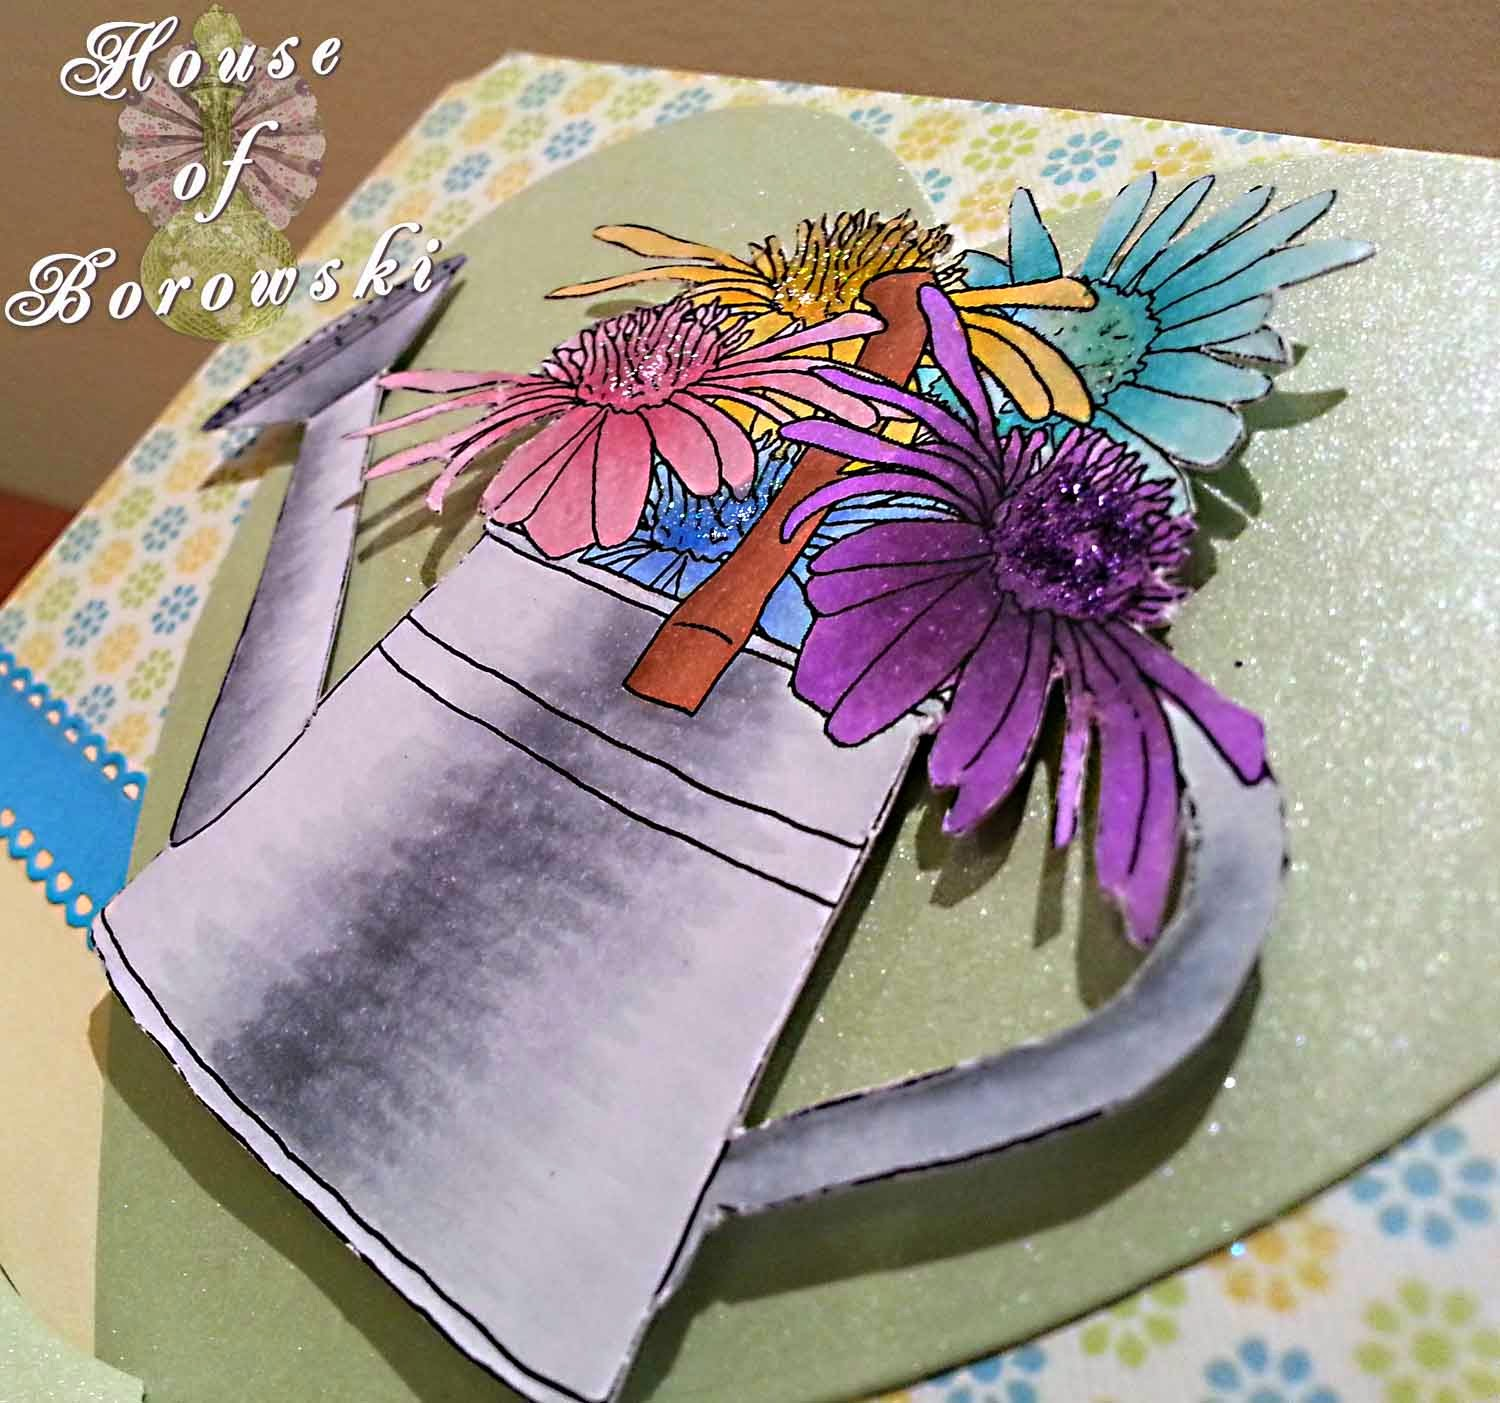 House of Borowski, Fitztown Garden 7, Copics, DCWR, AmyRStamps, Cheryl Lyn Allison Ribbons, Grommet tags, couture creations heart,Lil'Inker Designs bow die-mini